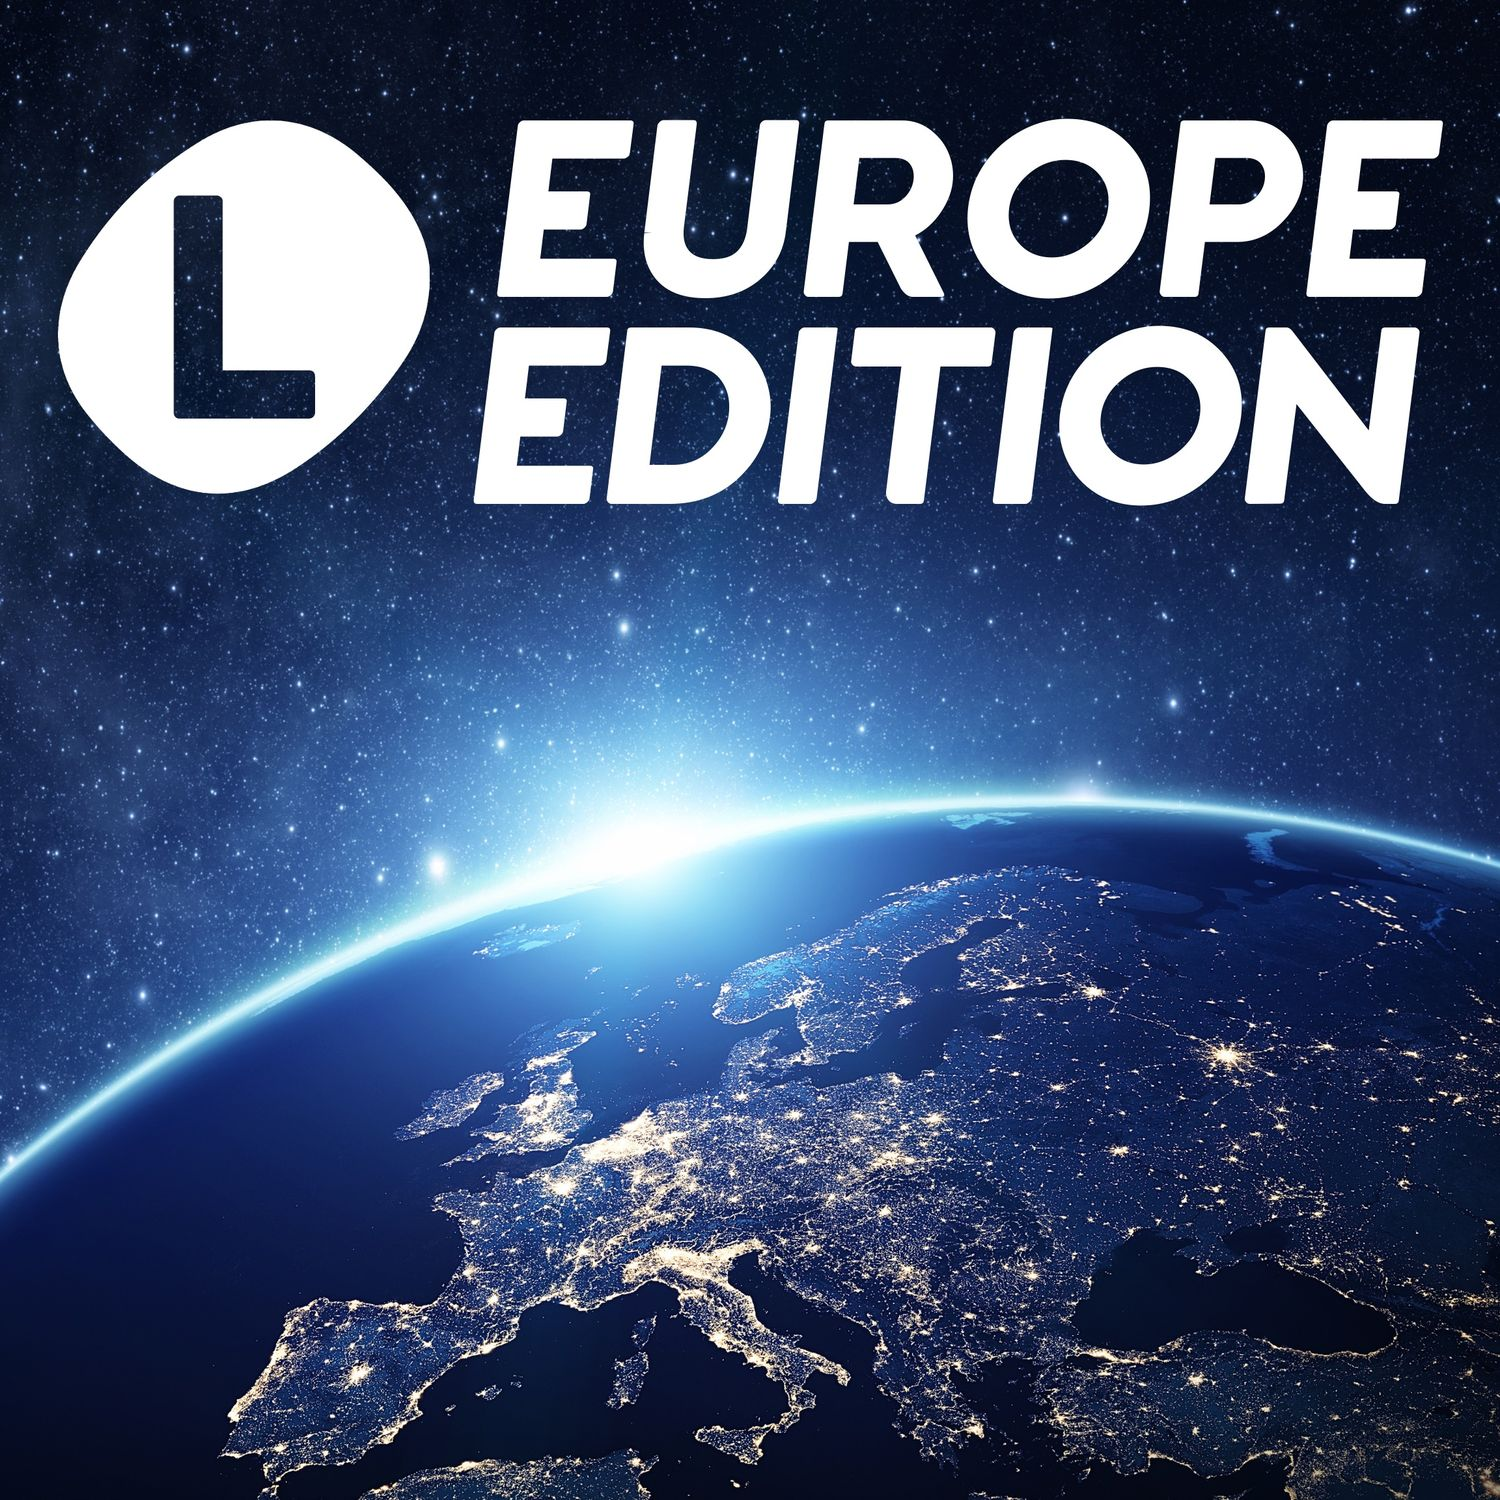 The Local Europe Edition